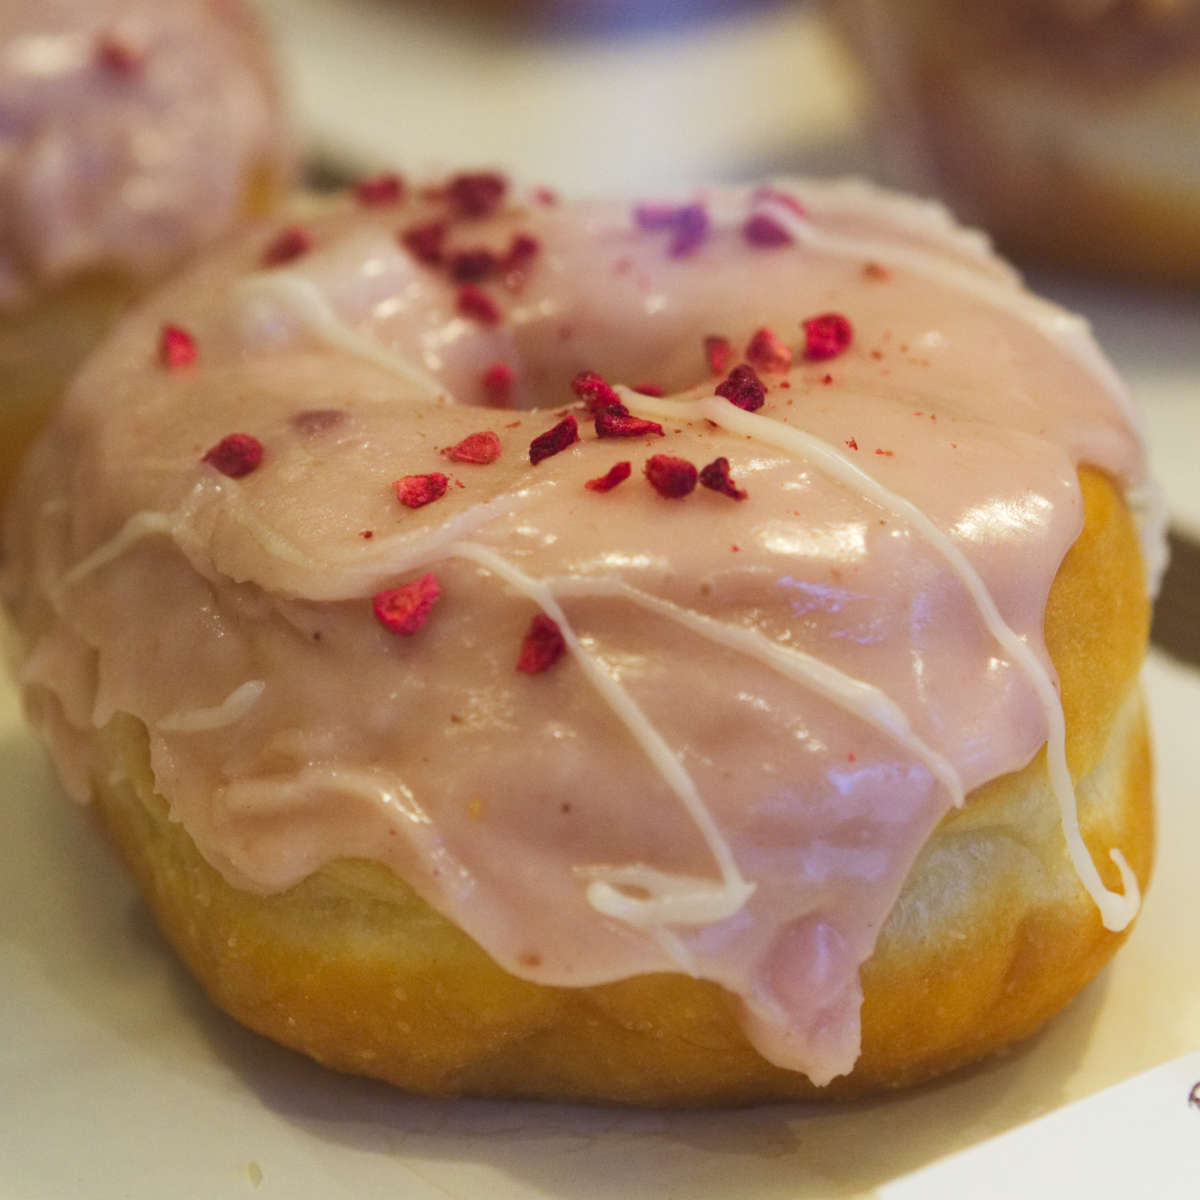 Vegan raspberry and white chocolate doughnut at Considerit, Edinburgh